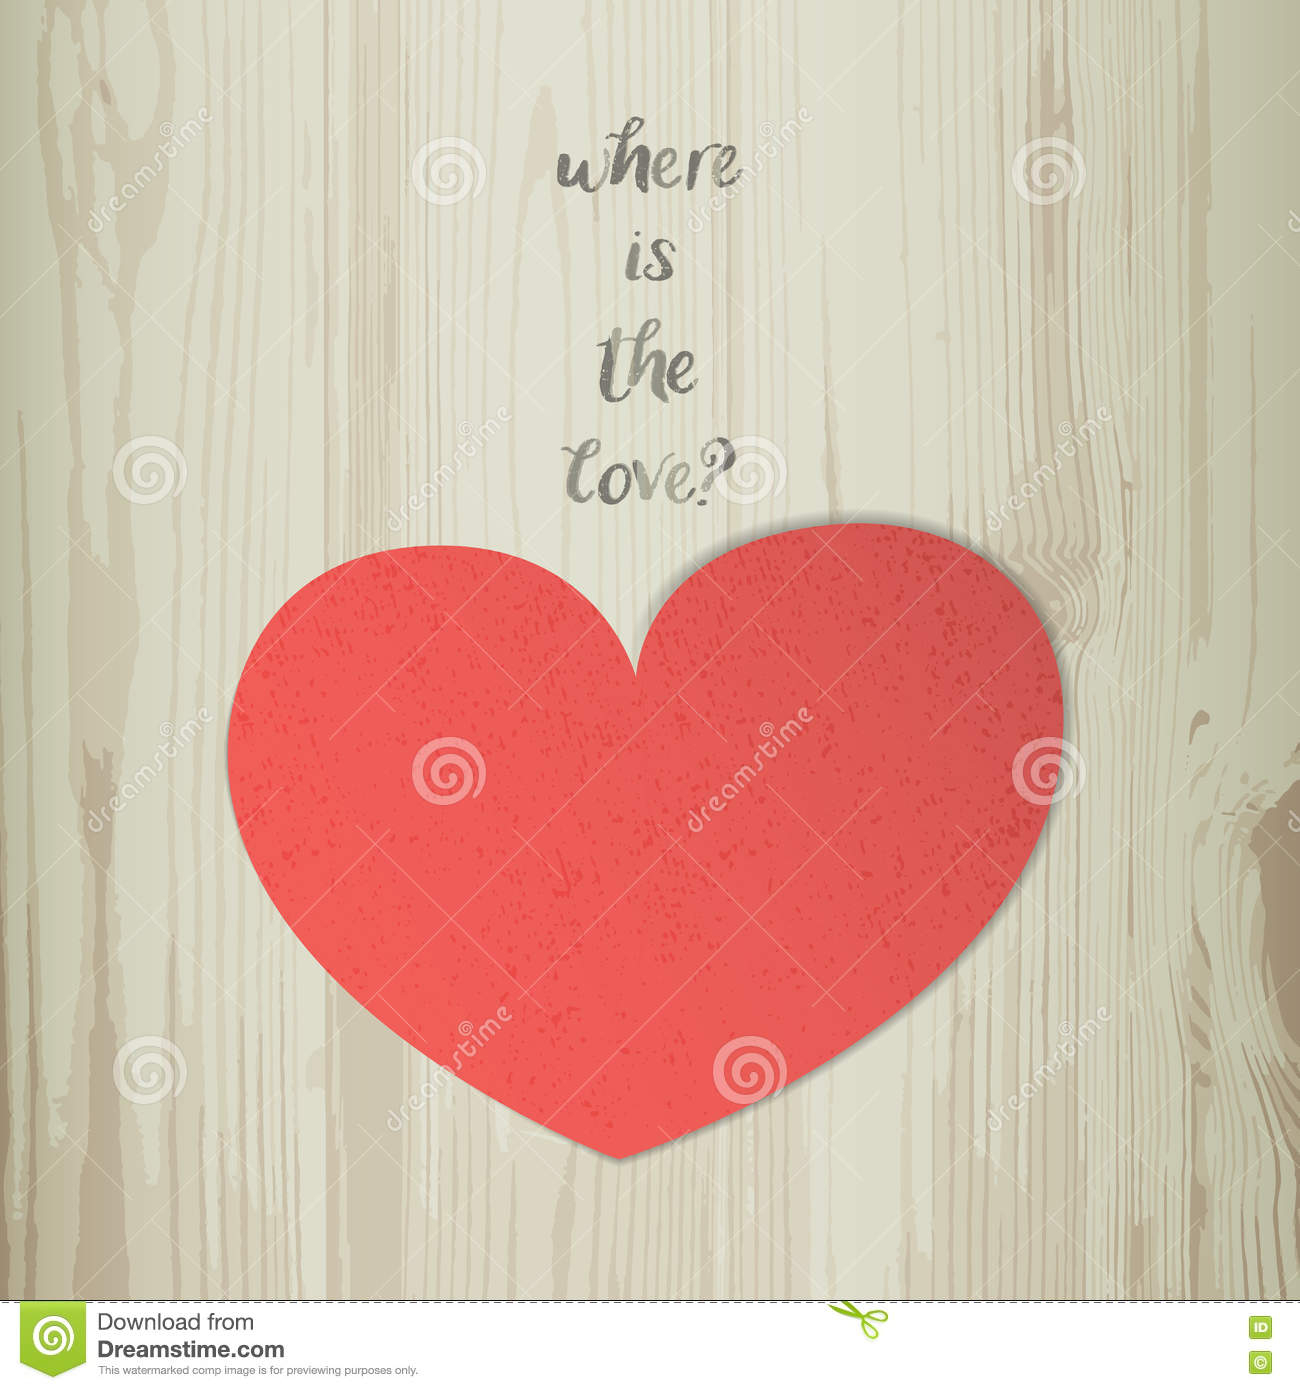 22+ Where Is The Love Download Free JPG